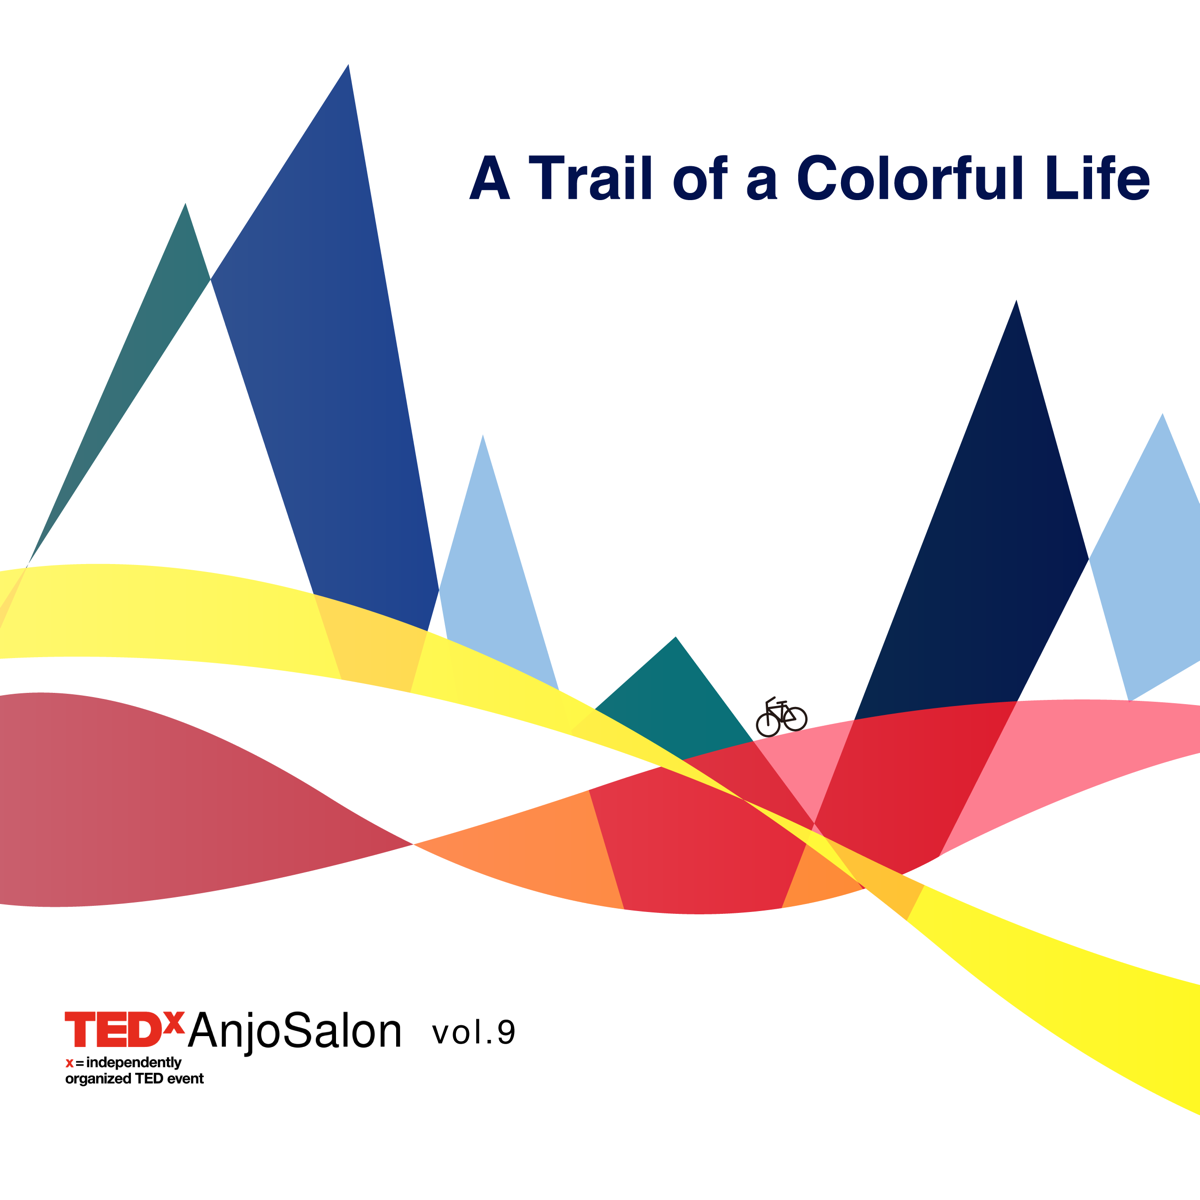 TEDxAnjoSalon vol.9